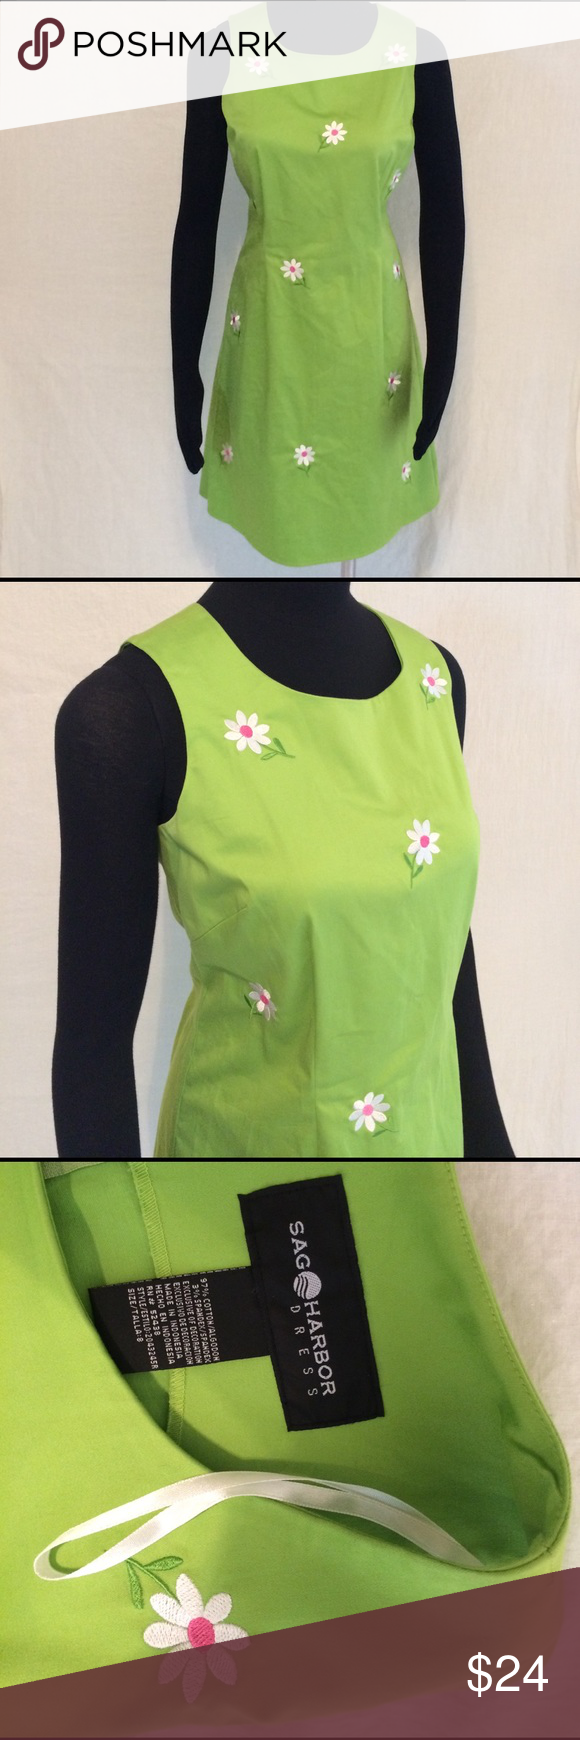 Sag Harbor Daisy Embroidered Summer Dress Size 8 Cute Green With Adorable Embroidery Daisies Dresses Midi